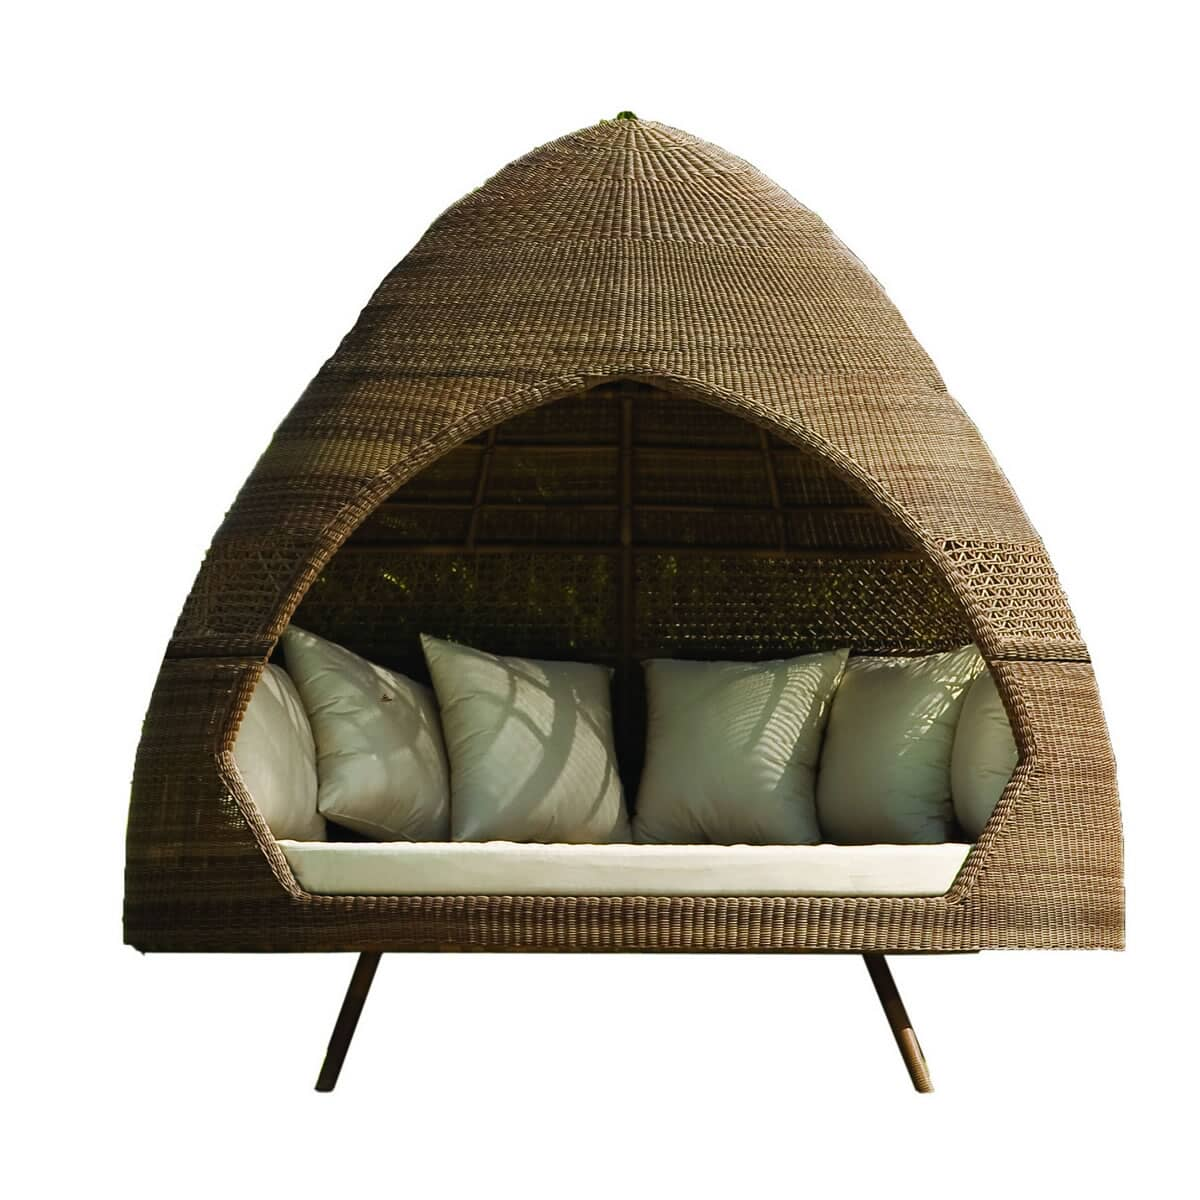 Alexander rose san marino relax hut cushions 7853 for Garden hut sale